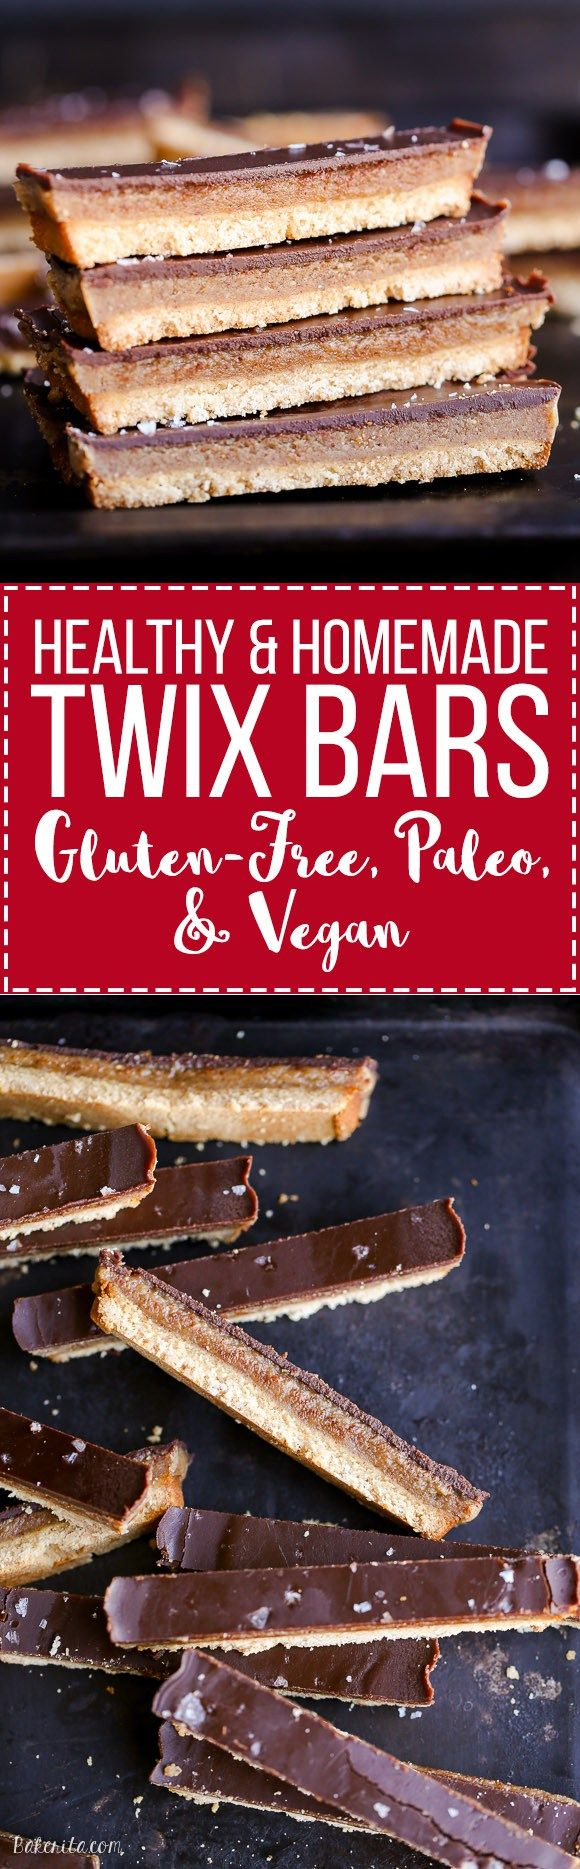 This recipe for healthy homemade Twix Bars is a game changer! When you take a bite, you won't believe that this candy bar copycat is gluten-free, refined sugar free, Paleo, and vegan.: